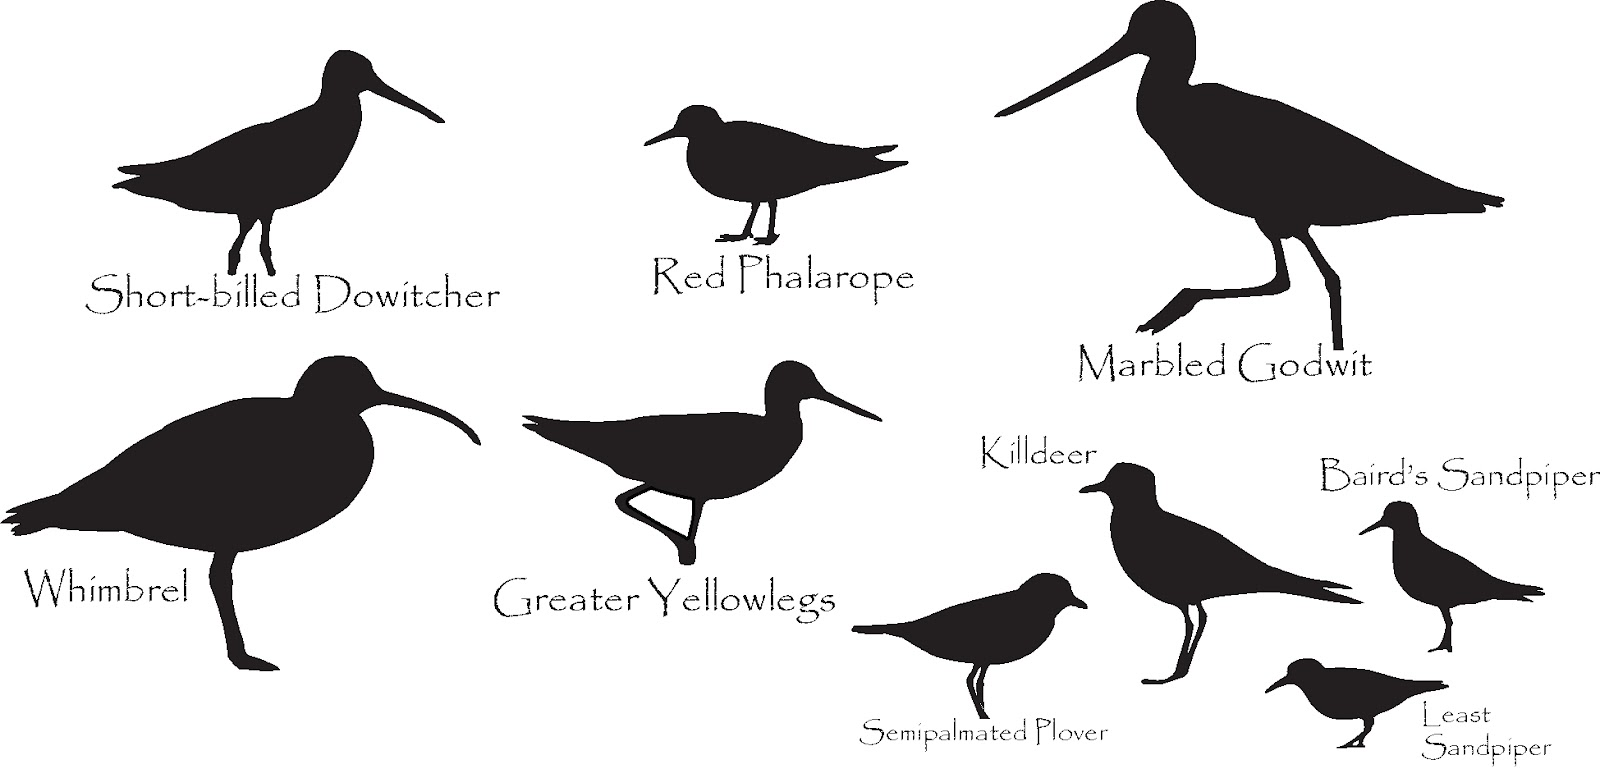 1600x769 List Of Synonyms And Antonyms Of The Word Sandpiper Silhouette